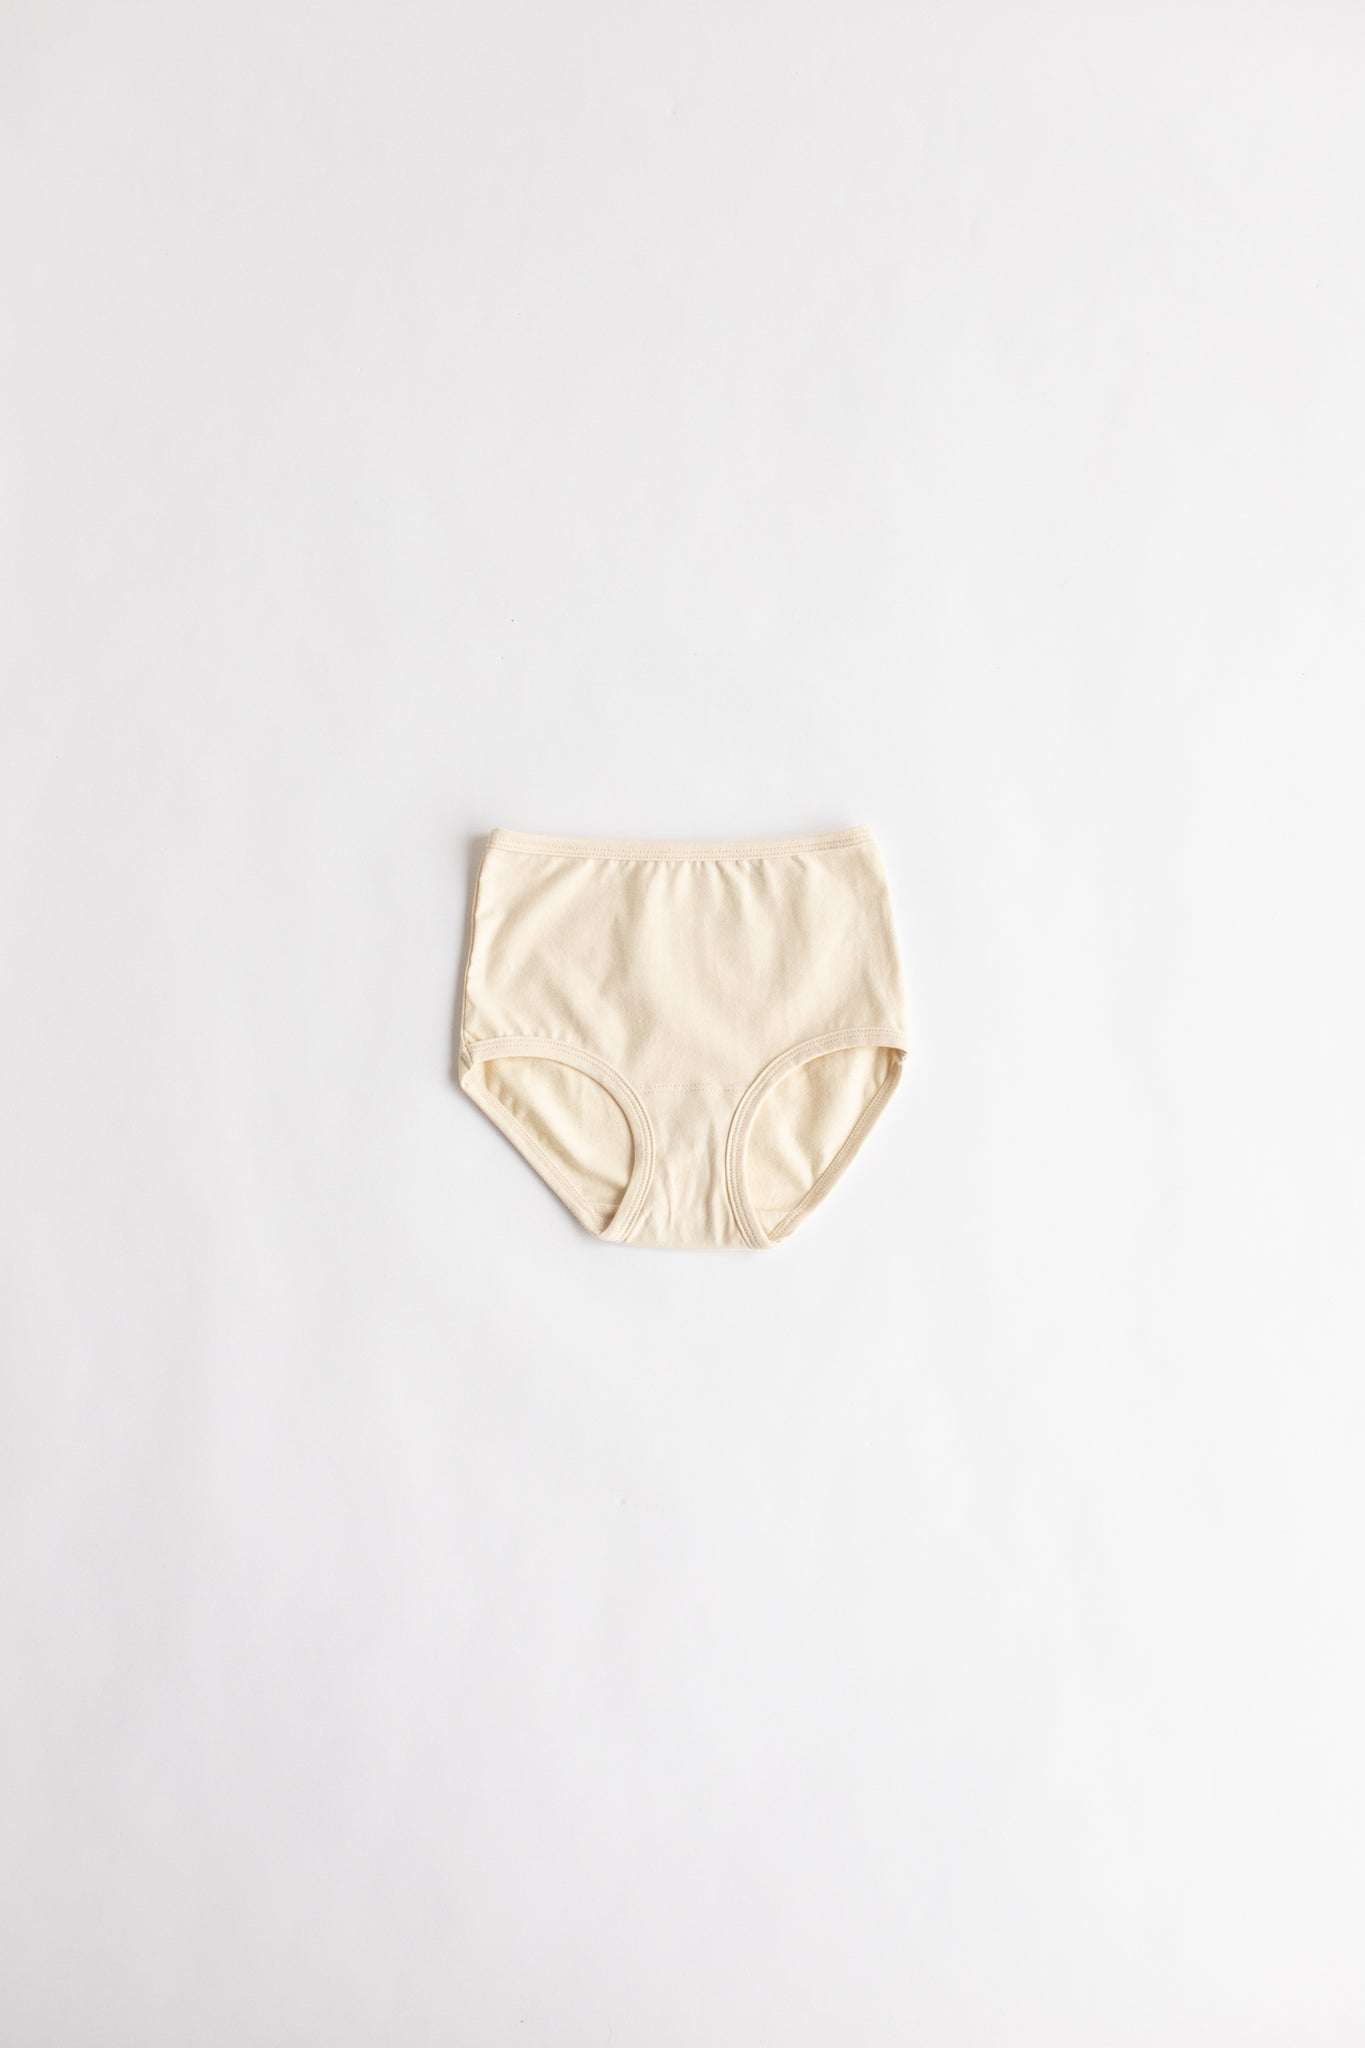 YOUTH UNDIES